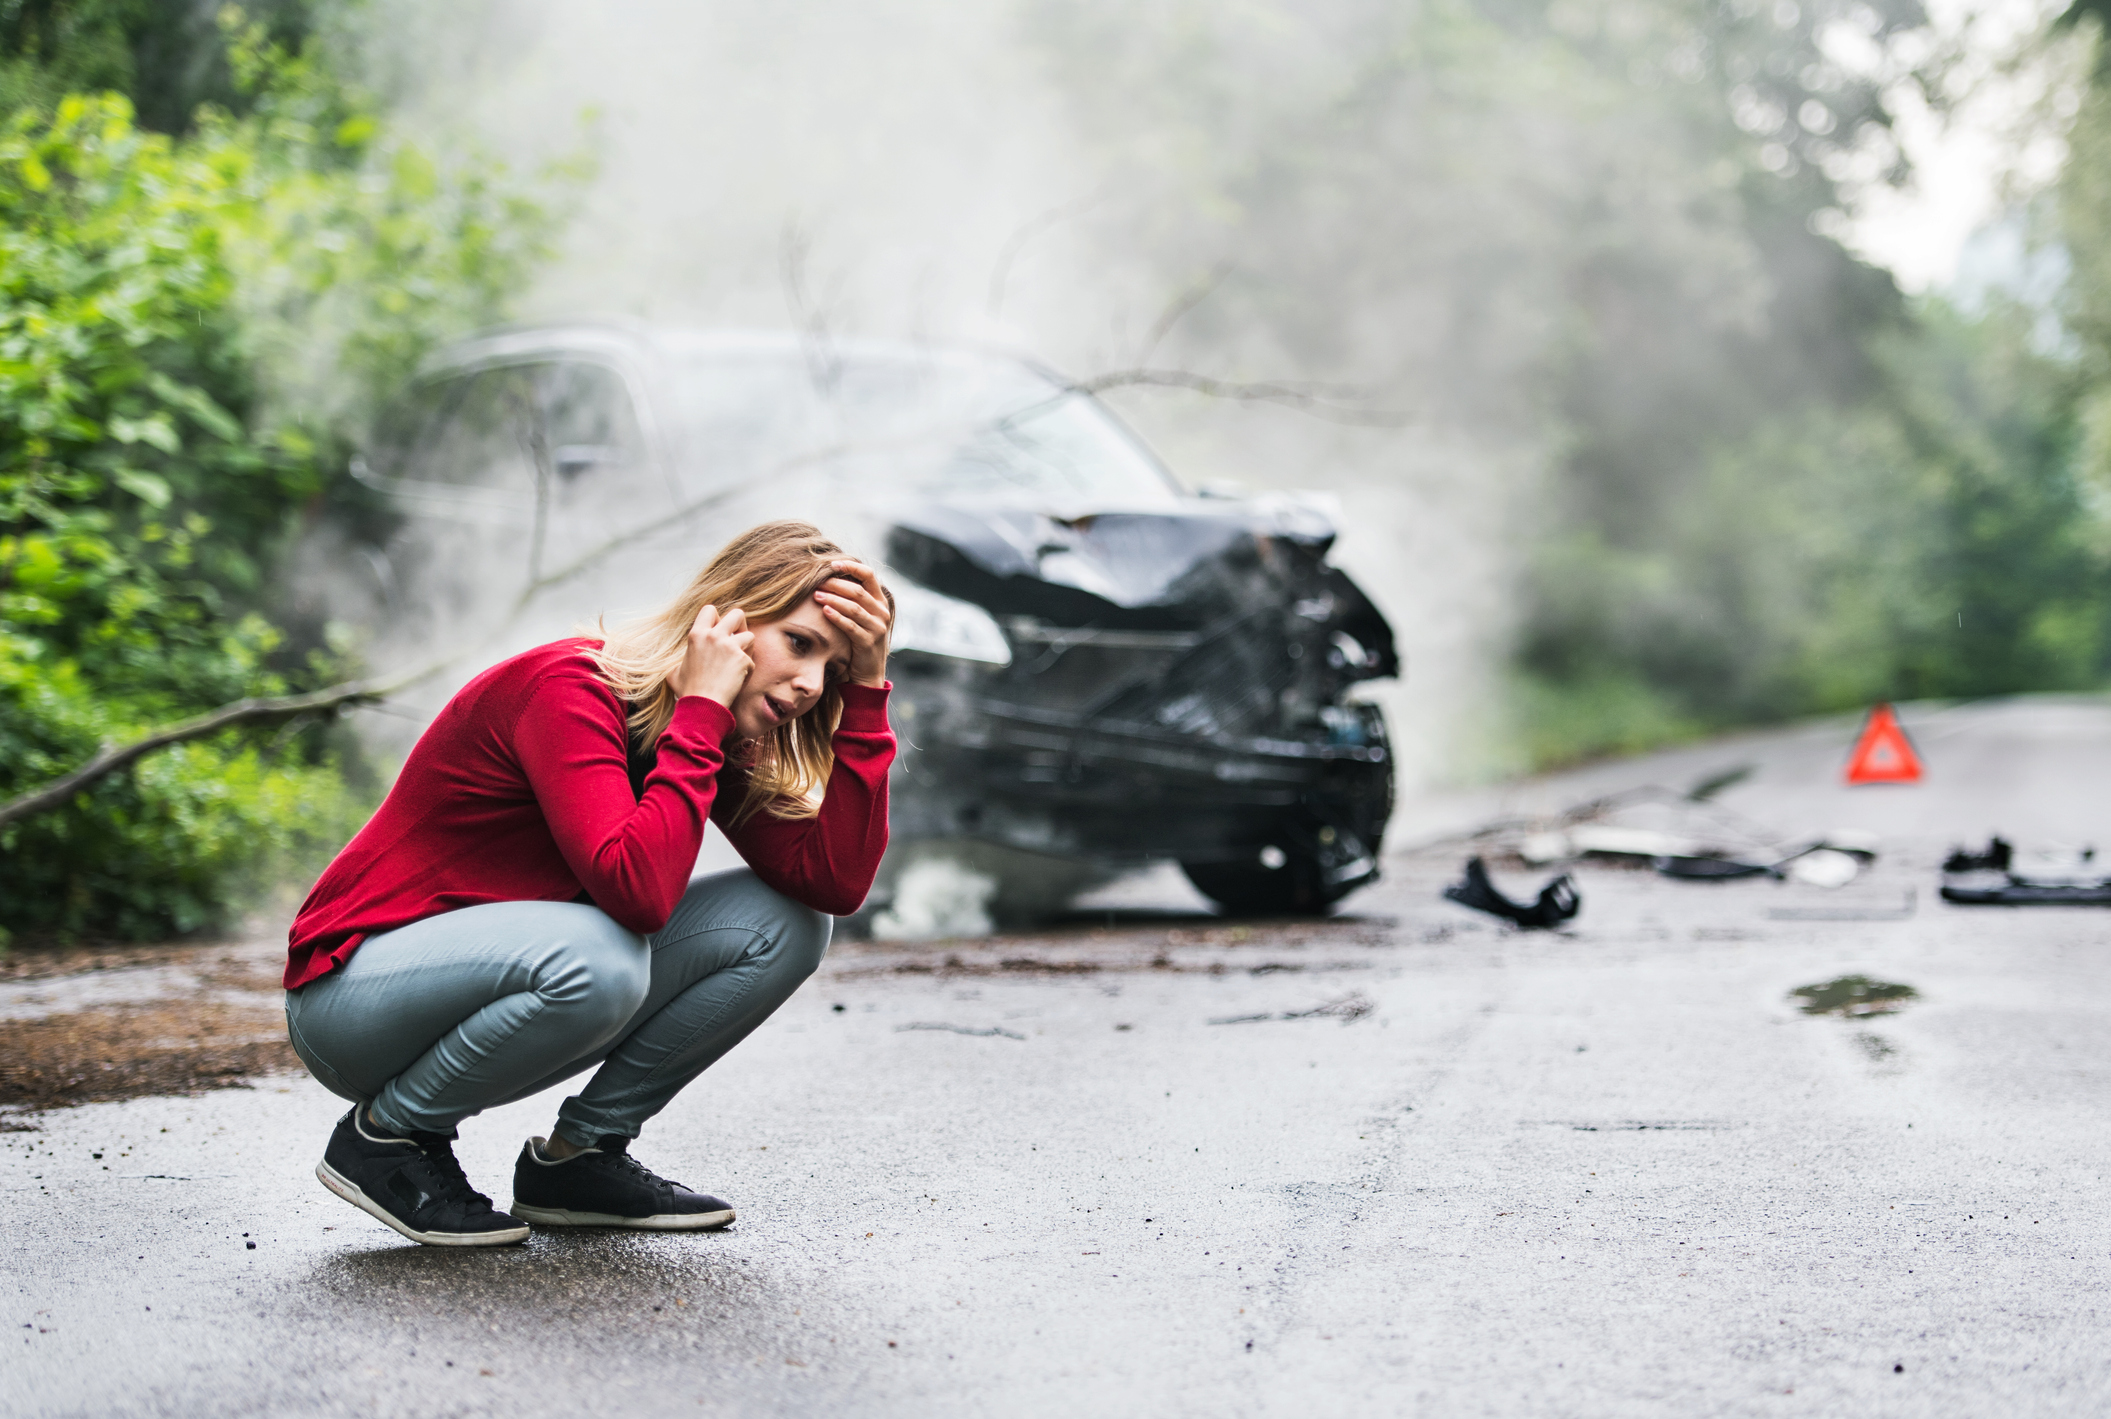 A frustrated young woman with smartphone by the damaged car after a car accident, making a phone call. Copy space.